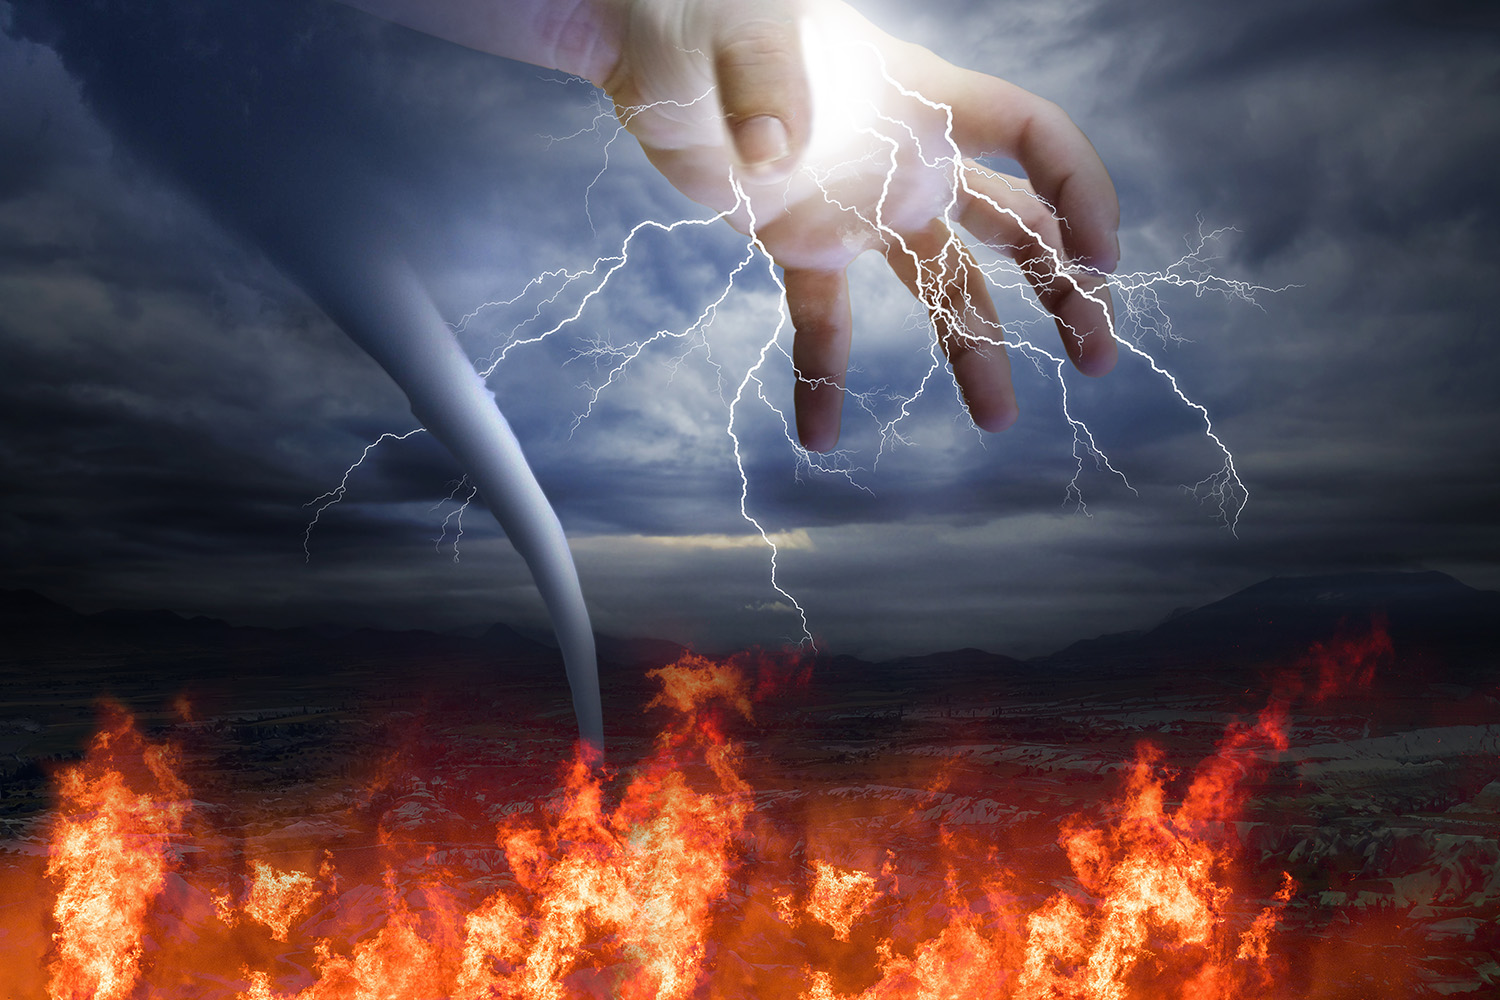 God's Judgment Part 2: Fear, Glory, and the IJ - Come And Reason Ministries